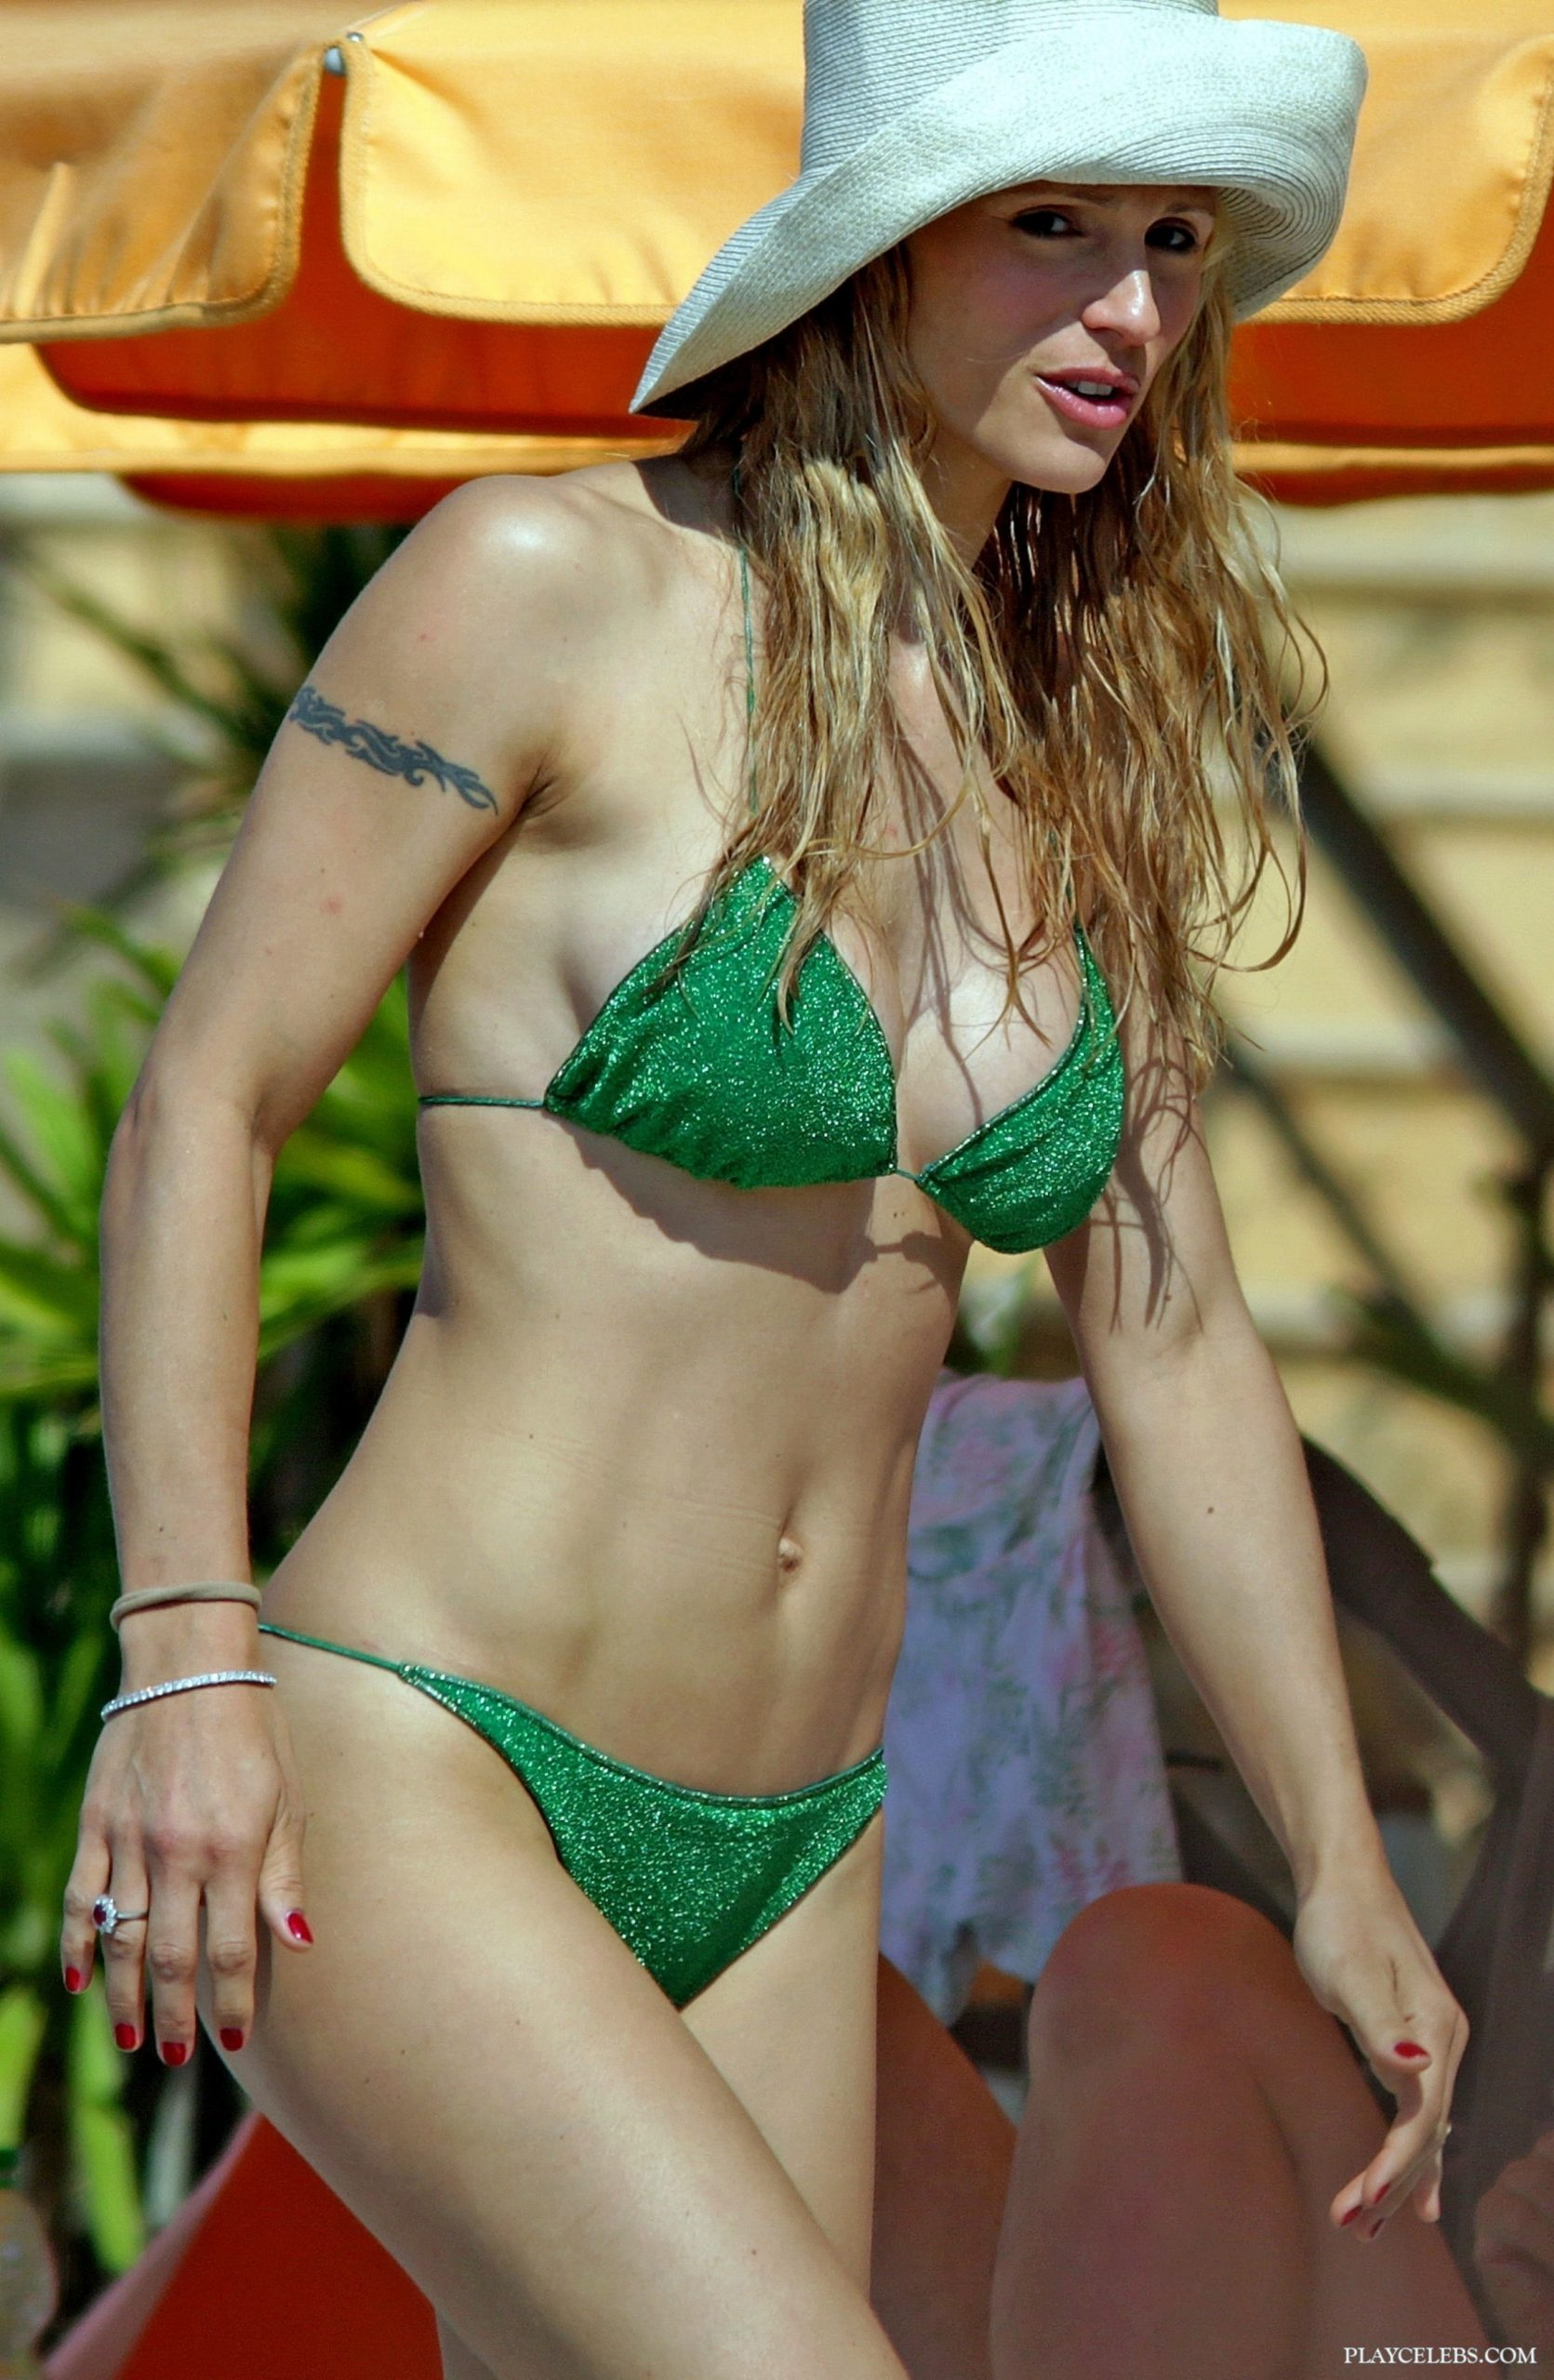 Super Model Michelle Hunziker Sunbathing In Sexy Green Bikini